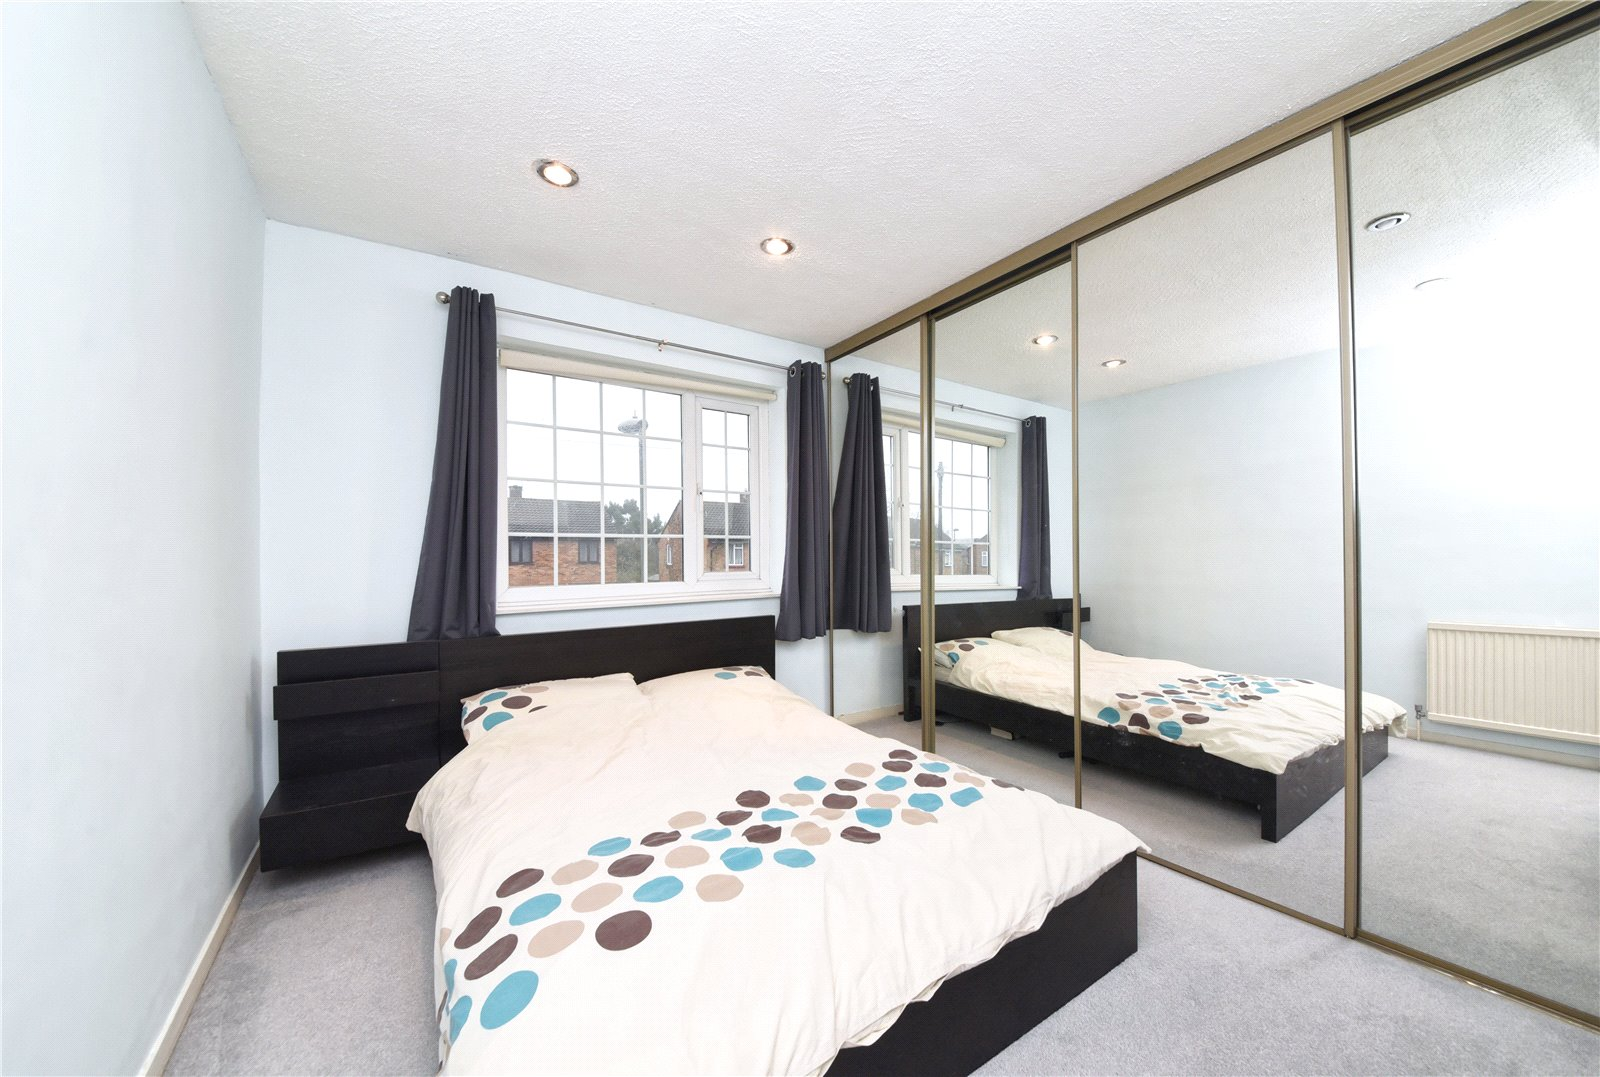 3 bed house for sale in Edgware, HA8 8XT  - Property Image 7